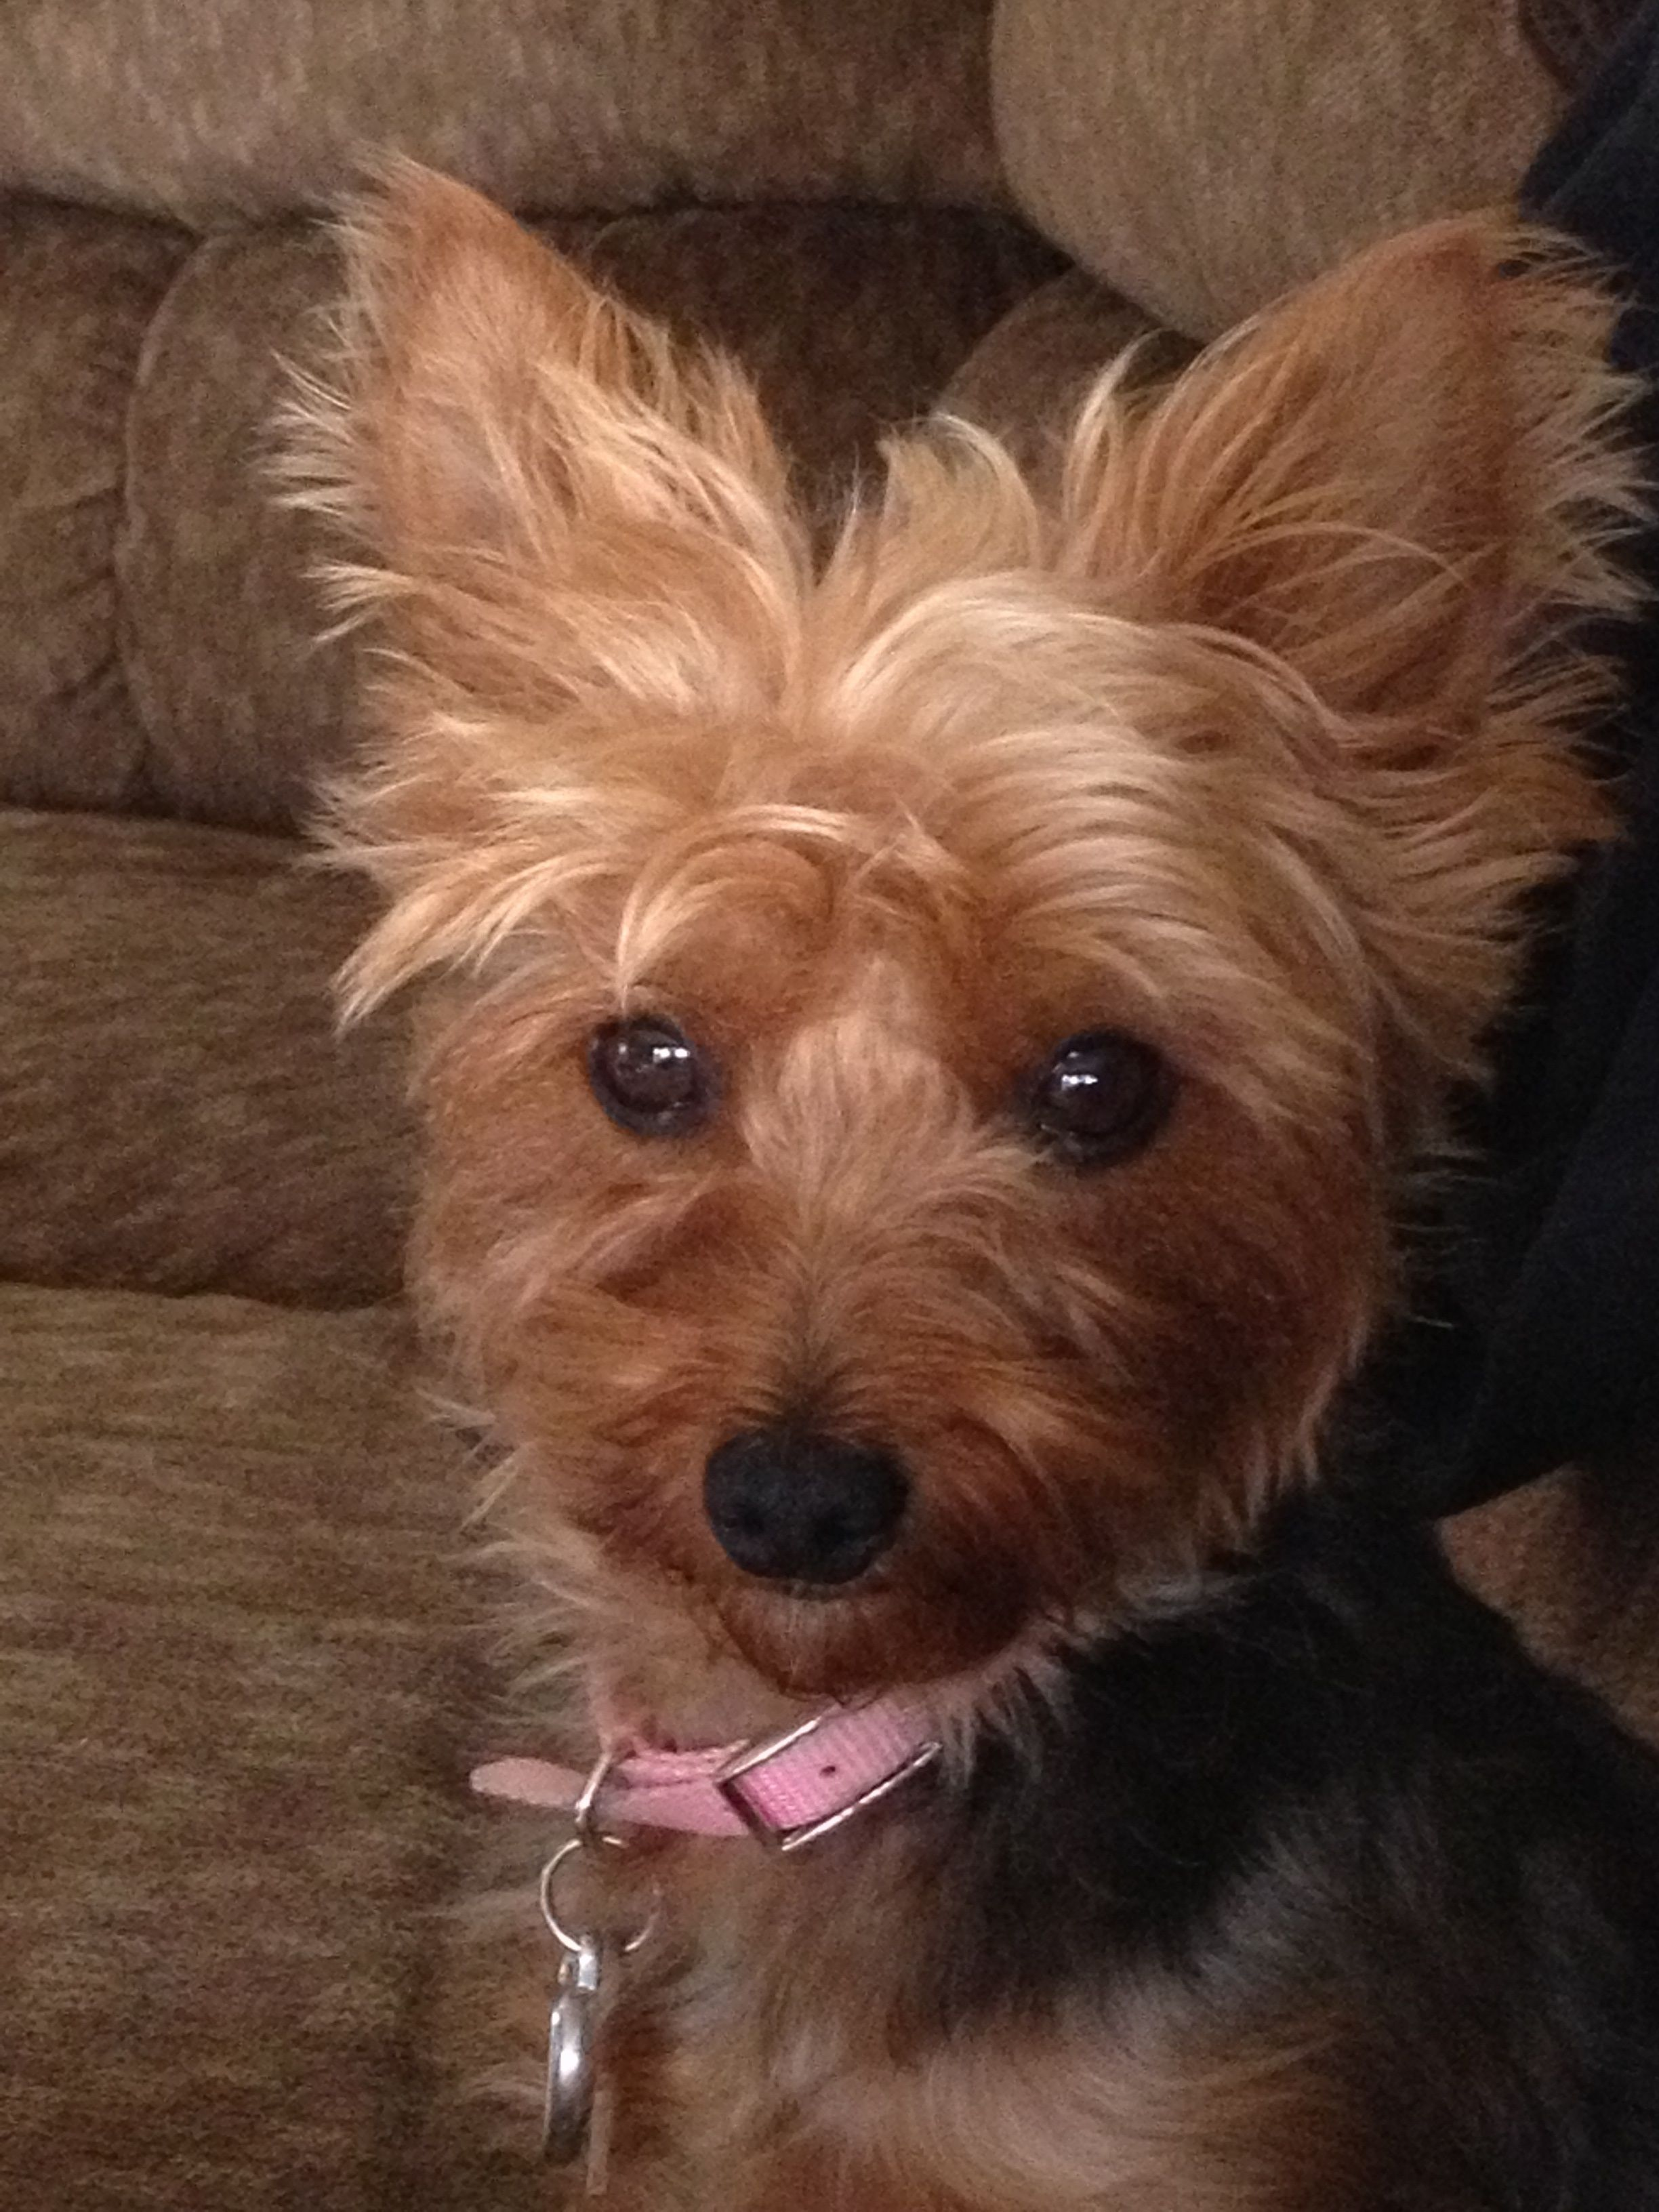 Yorkie Dogs This Looks Like Buster But It S Not My Dog I Miss Him Rip 3 Yorkie Dogs Yorkie Moms Yorkie